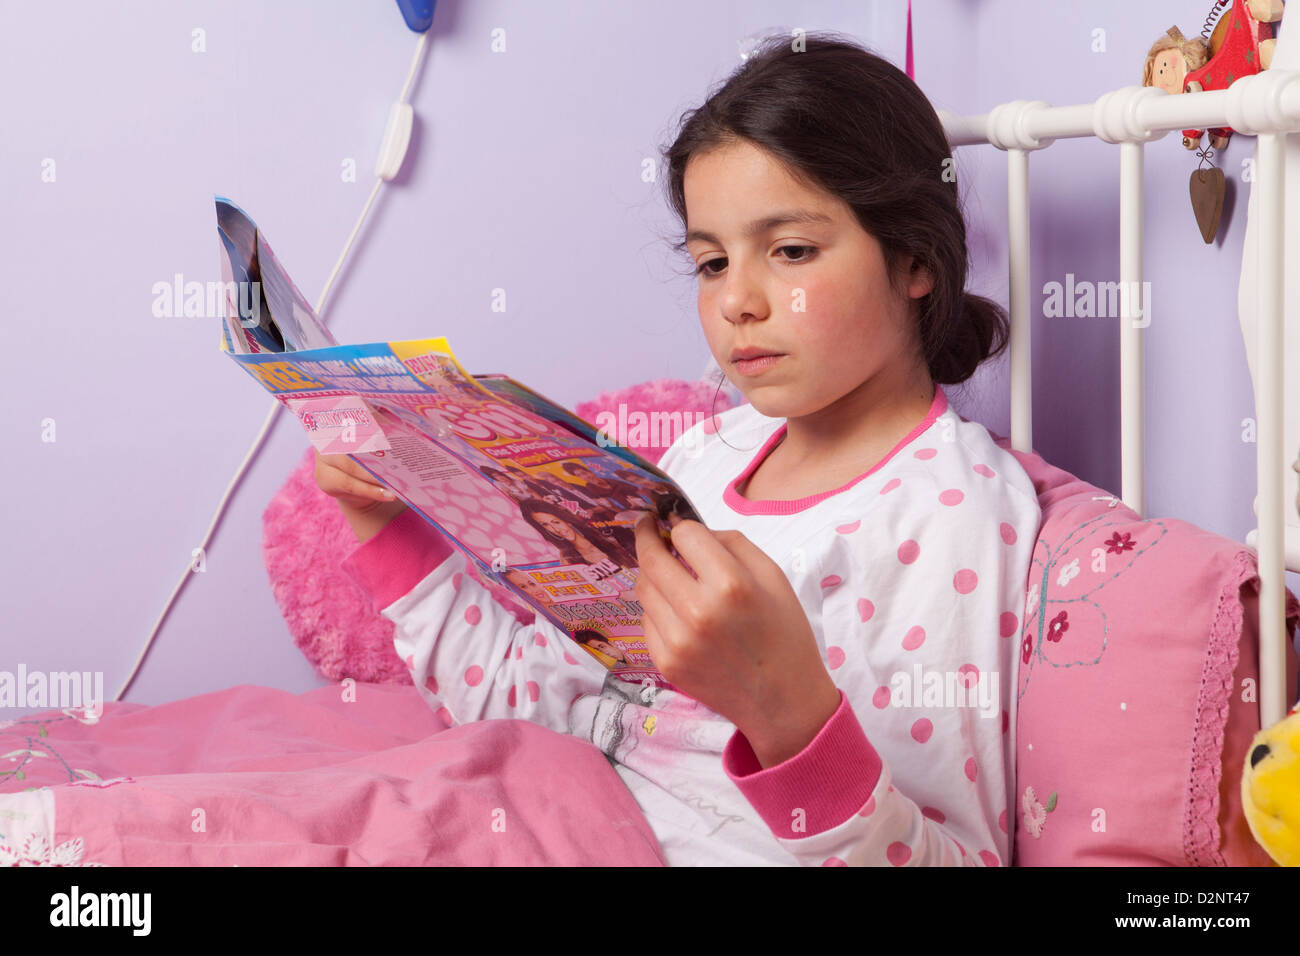 Girl reads a magazine in her bed - Stock Image